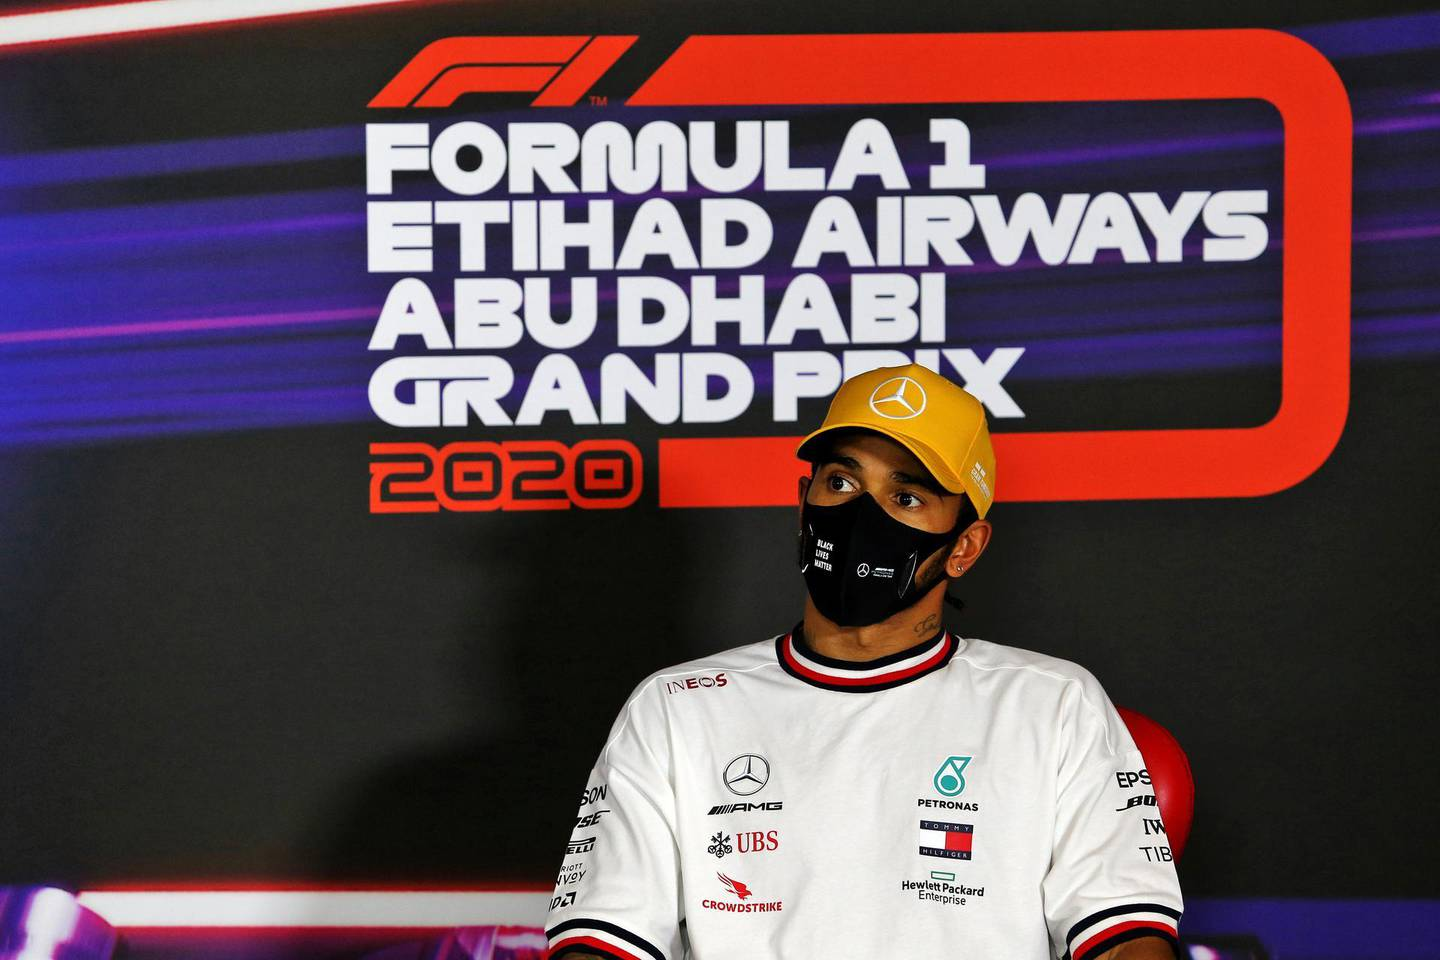 ABU DHABI, UNITED ARAB EMIRATES - DECEMBER 12: Third place qualifier Lewis Hamilton of Great Britain and Mercedes GP talks in a press conference after qualifying ahead of the F1 Grand Prix of Abu Dhabi at Yas Marina Circuit on December 12, 2020 in Abu Dhabi, United Arab Emirates. (Photo by James Moy - Pool/Getty Images)